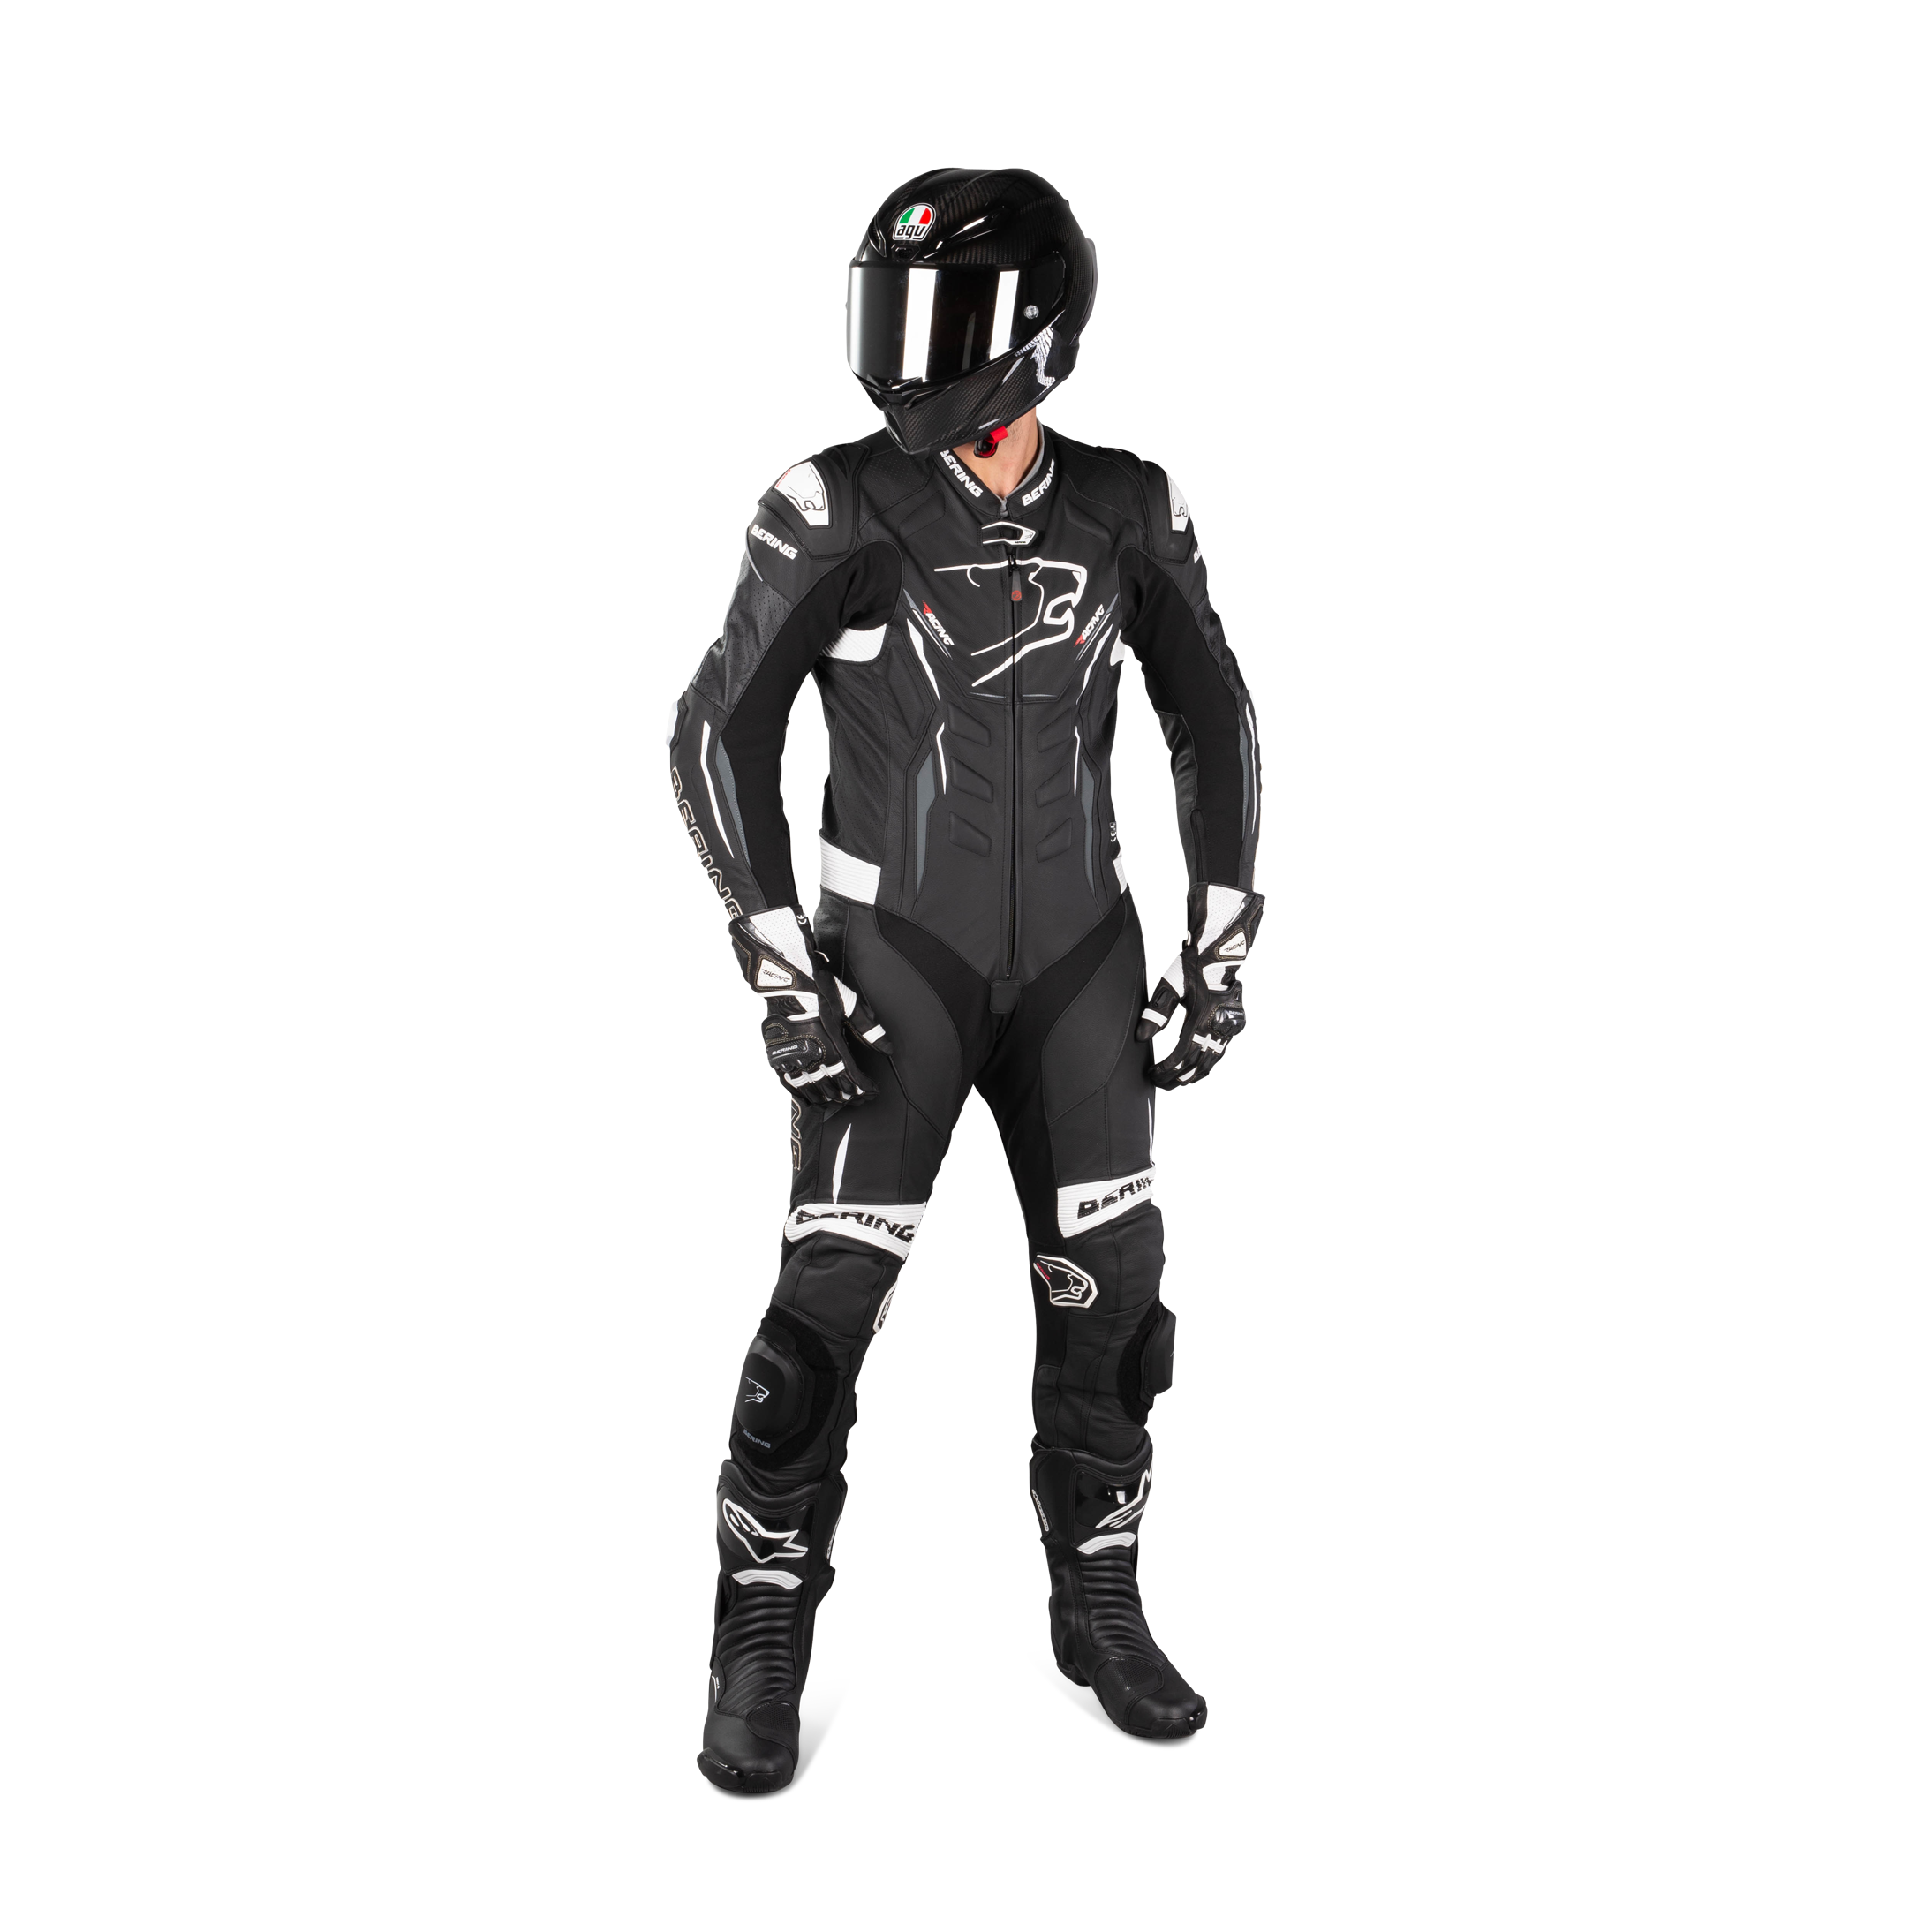 NorthernFinch Mens Fashion Motorbike Real Leather Two Pieces Suit with Armor Protection Grey /& Black